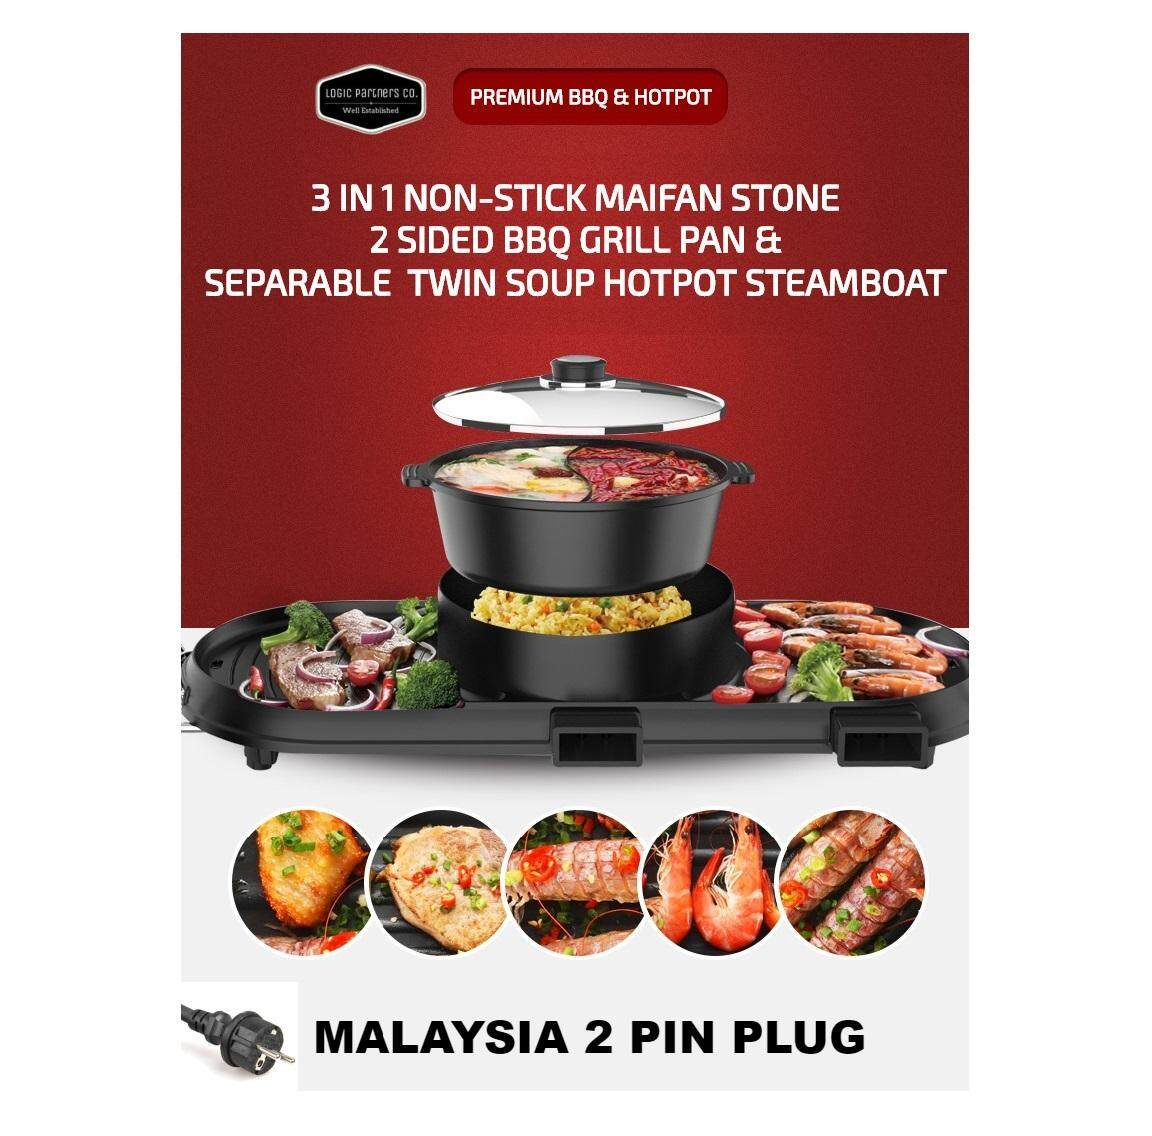 3 In 1 Non-Stick Maifan Stone Large Bbq Grill Pan & Separable Twin Soup Base Hotpot Steamboat With 2 Temperature Controllers Barbeku By Logic Partners Store.